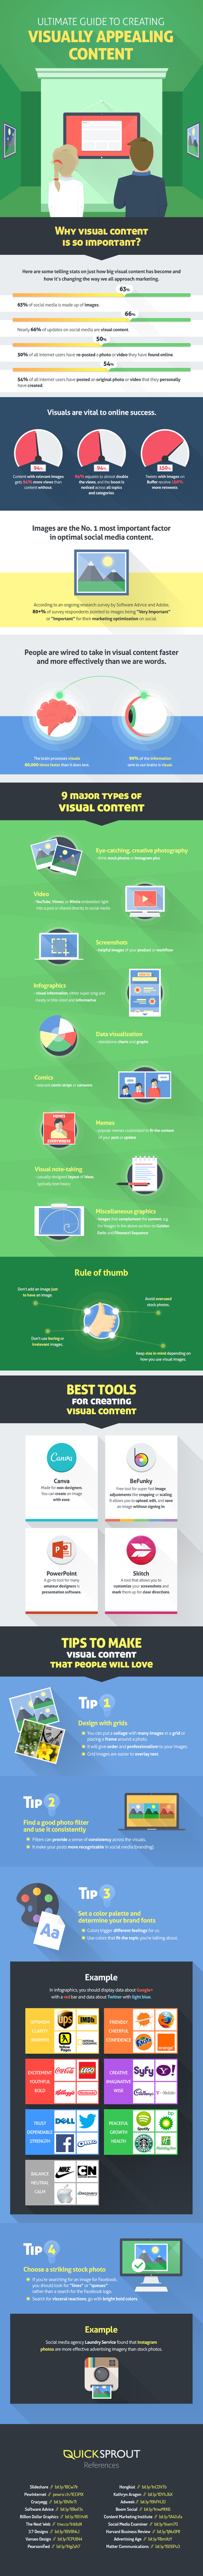 The Ultimate Guide to Creating Visually Appealing Content - QuickSprout | Keep In The Know | Scoop.it